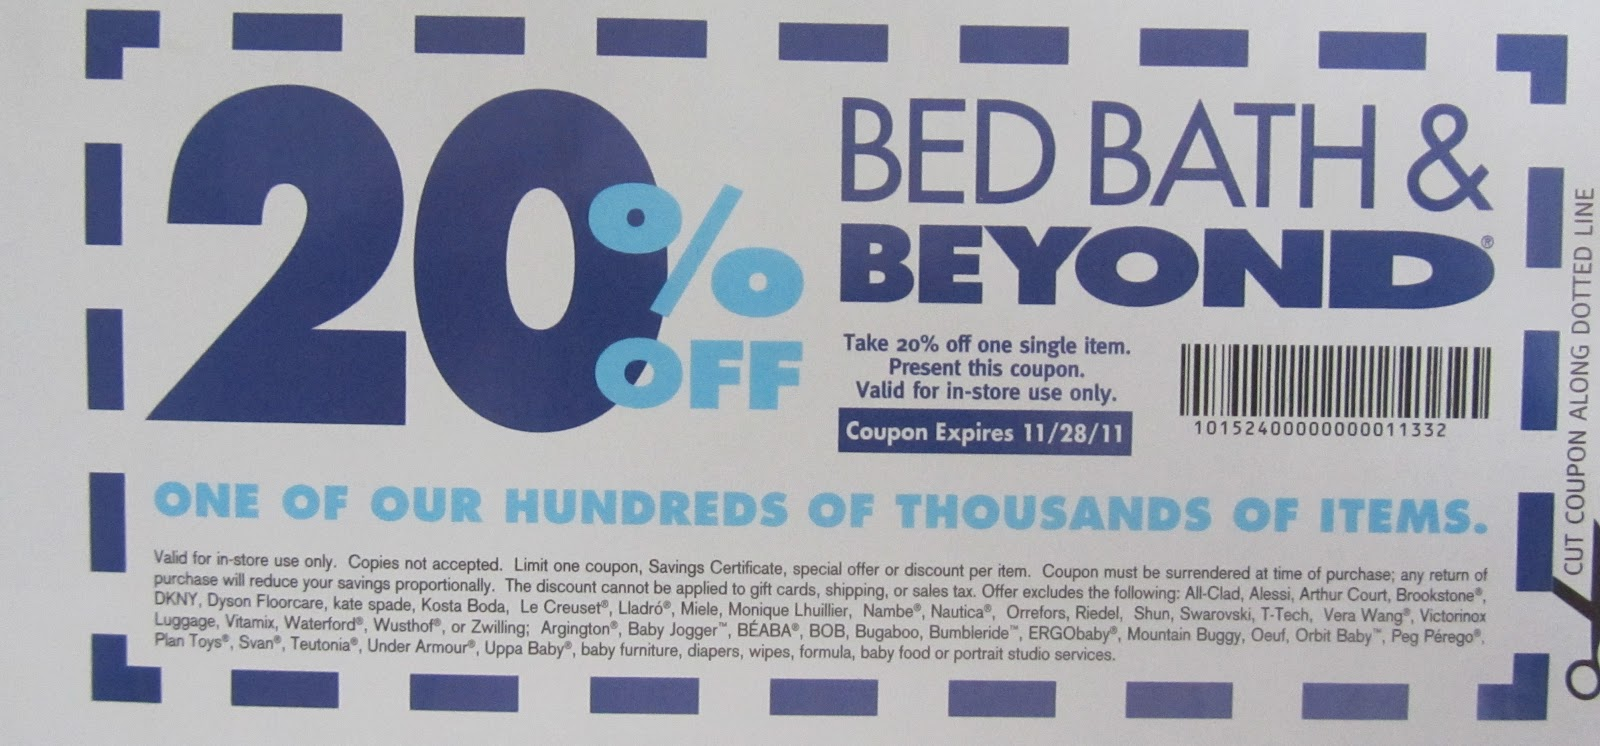 bed bath and beyond coupon 2012 acanthus and acorn tuesday tip 13145